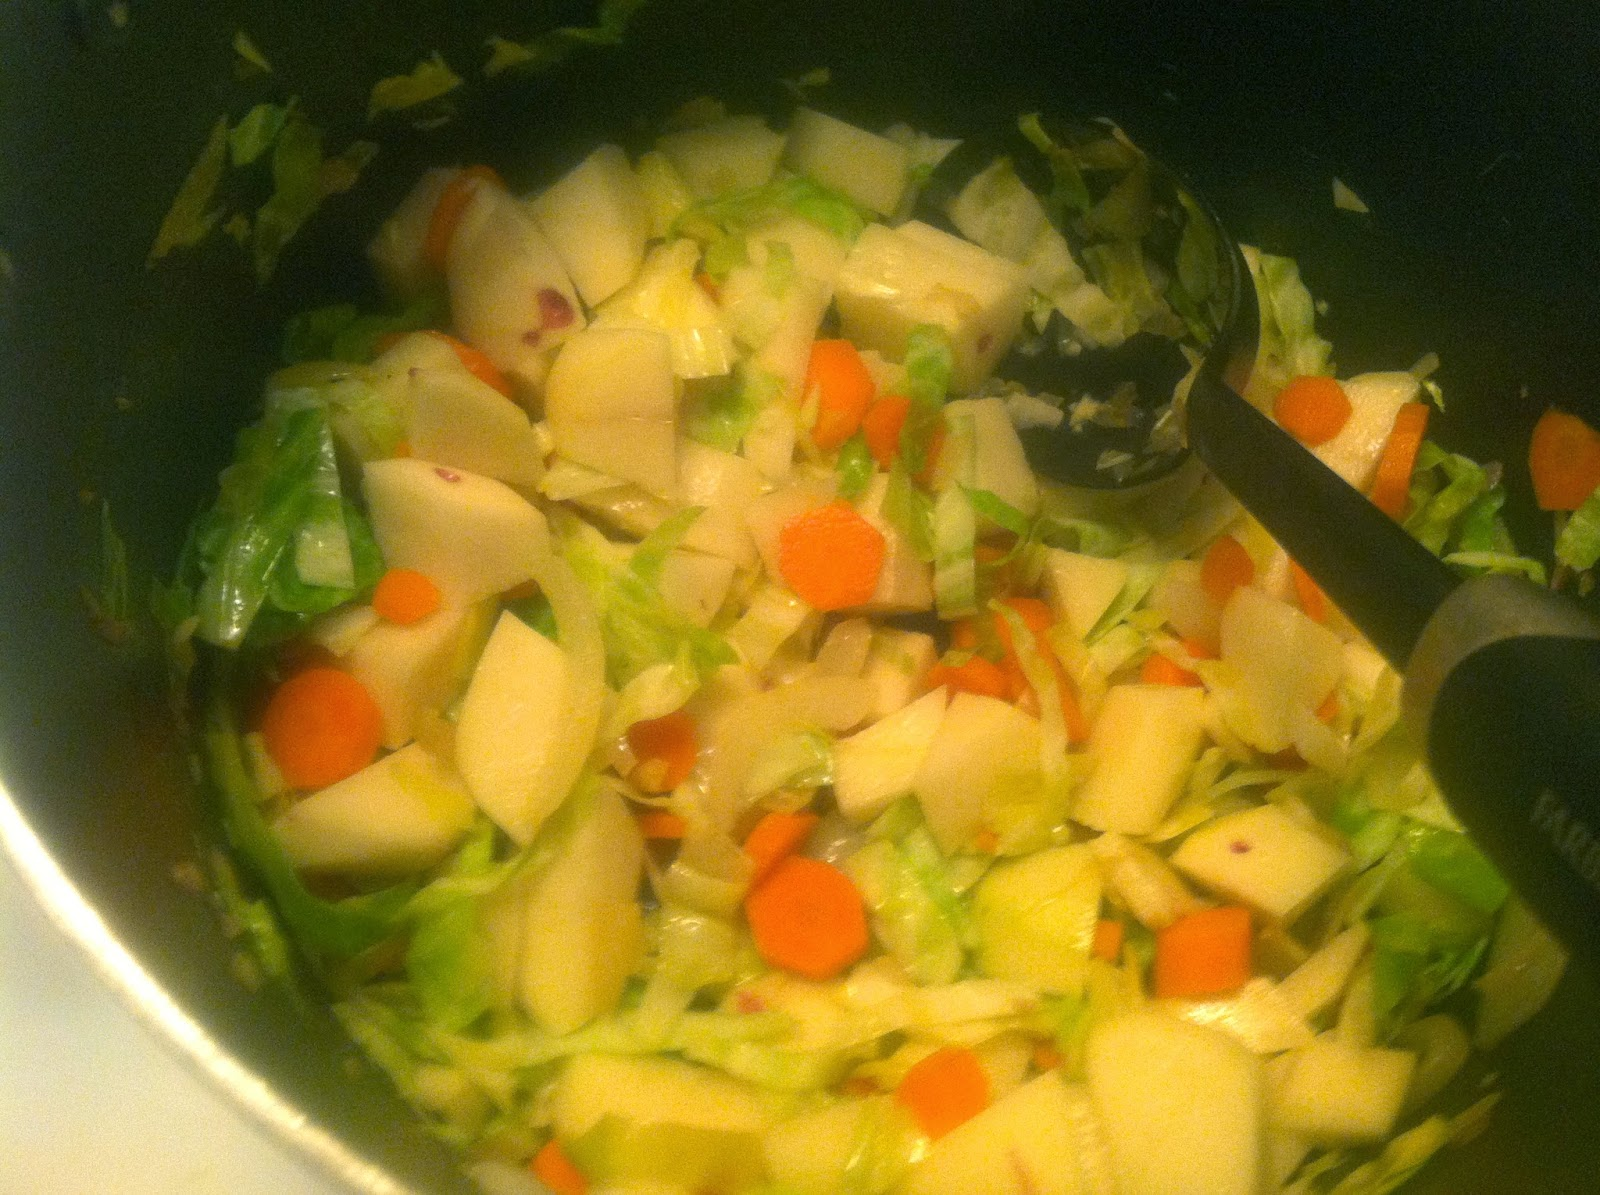 Cabbage, Potatoes and Carrots getting stirred up for some Irish soup. Cooking Chat recipe.